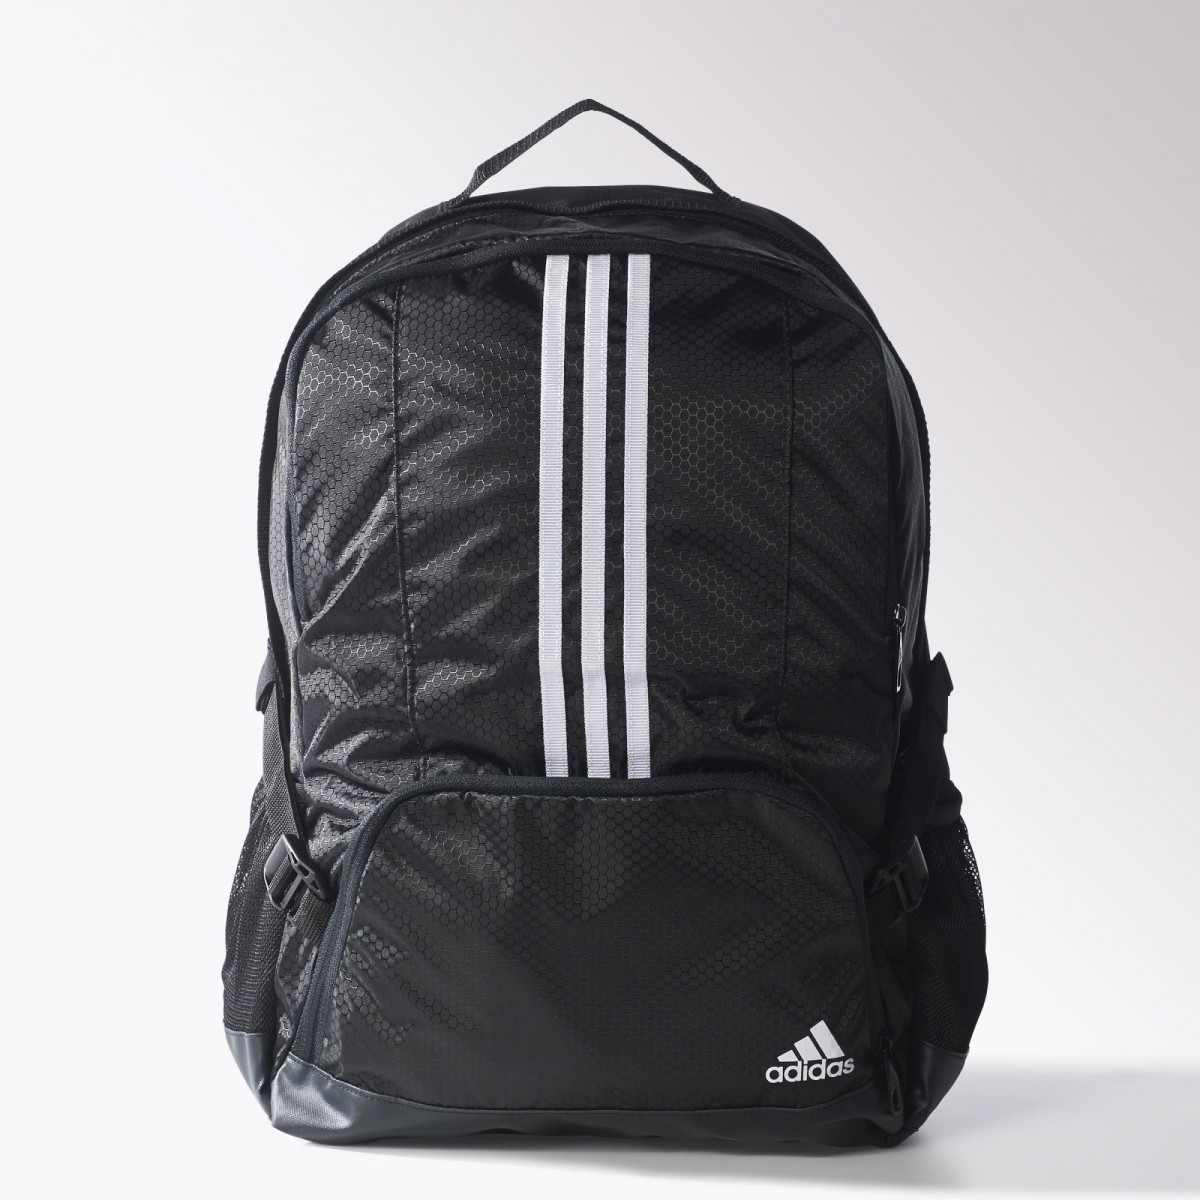 M67828 Adidas 3s Training Essentials Mochila gyf6b7Y